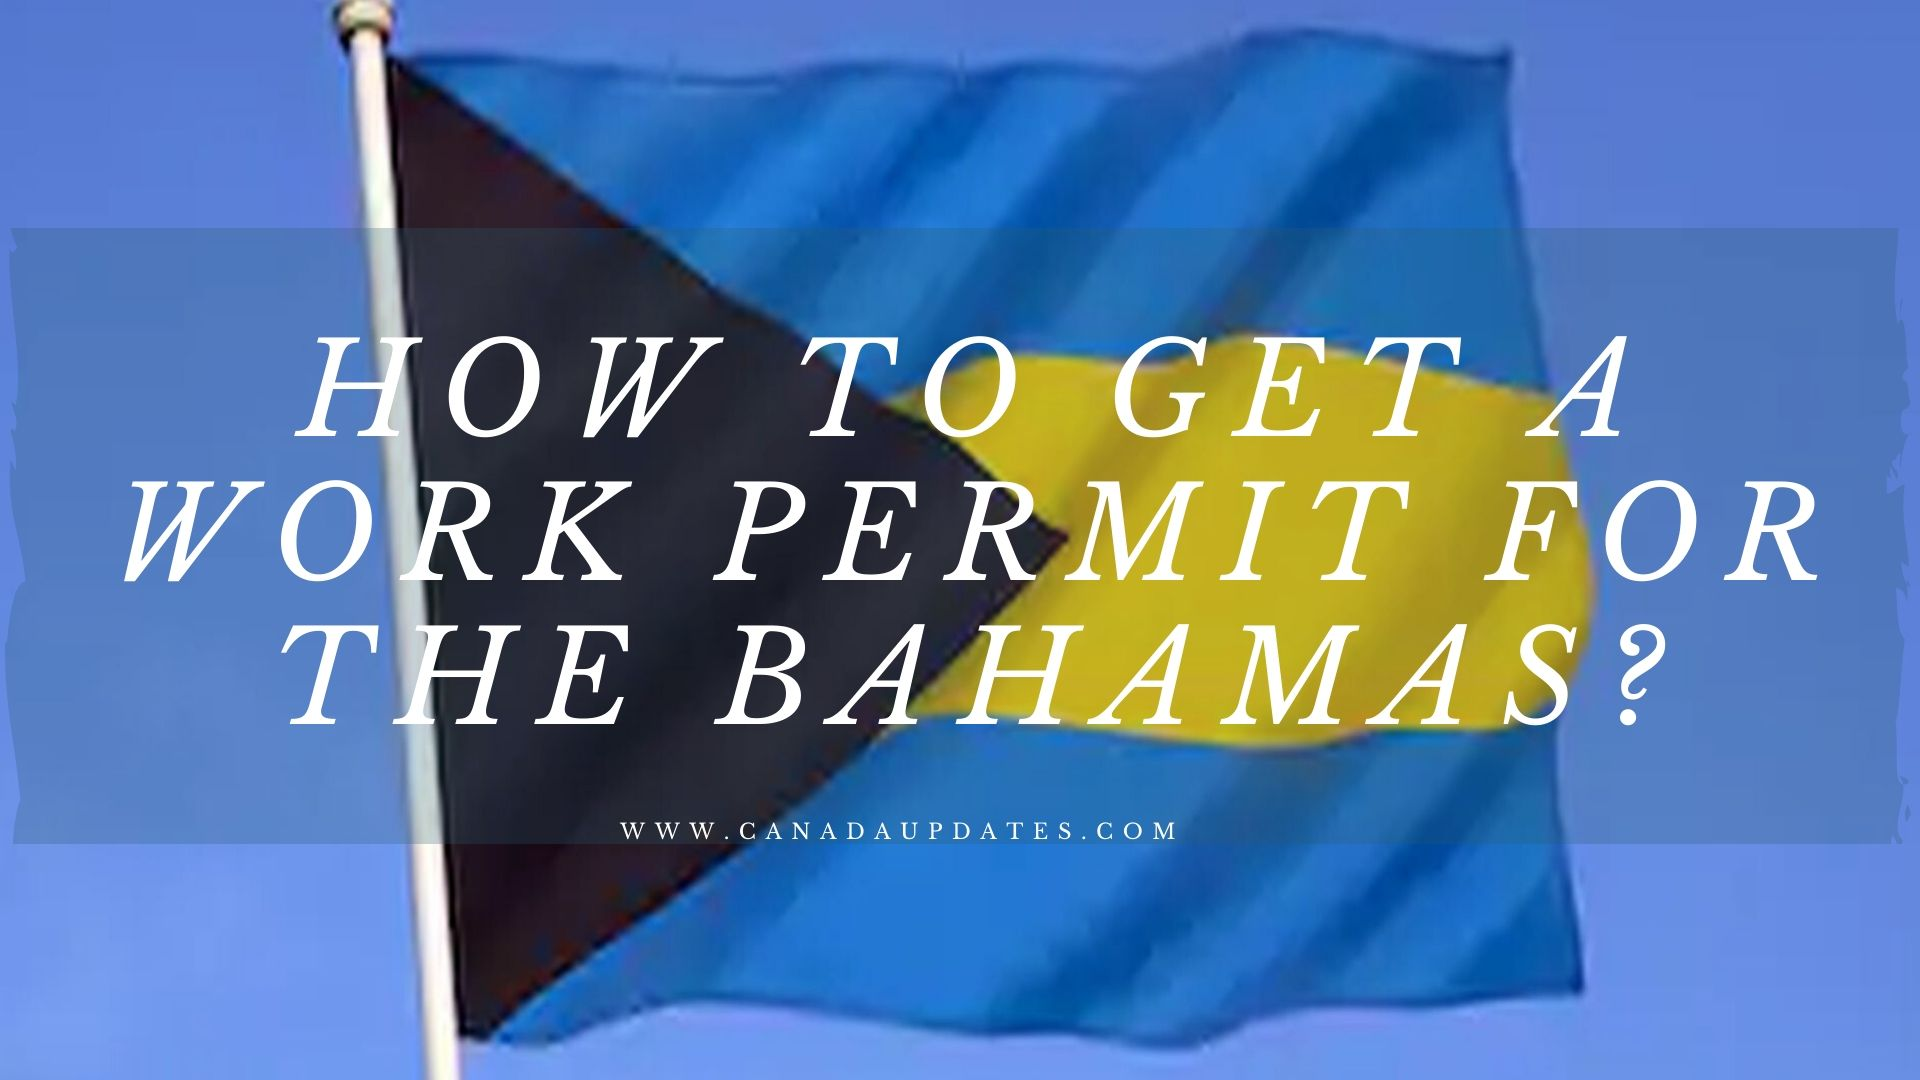 How to Get a Work Permit for the Bahamas